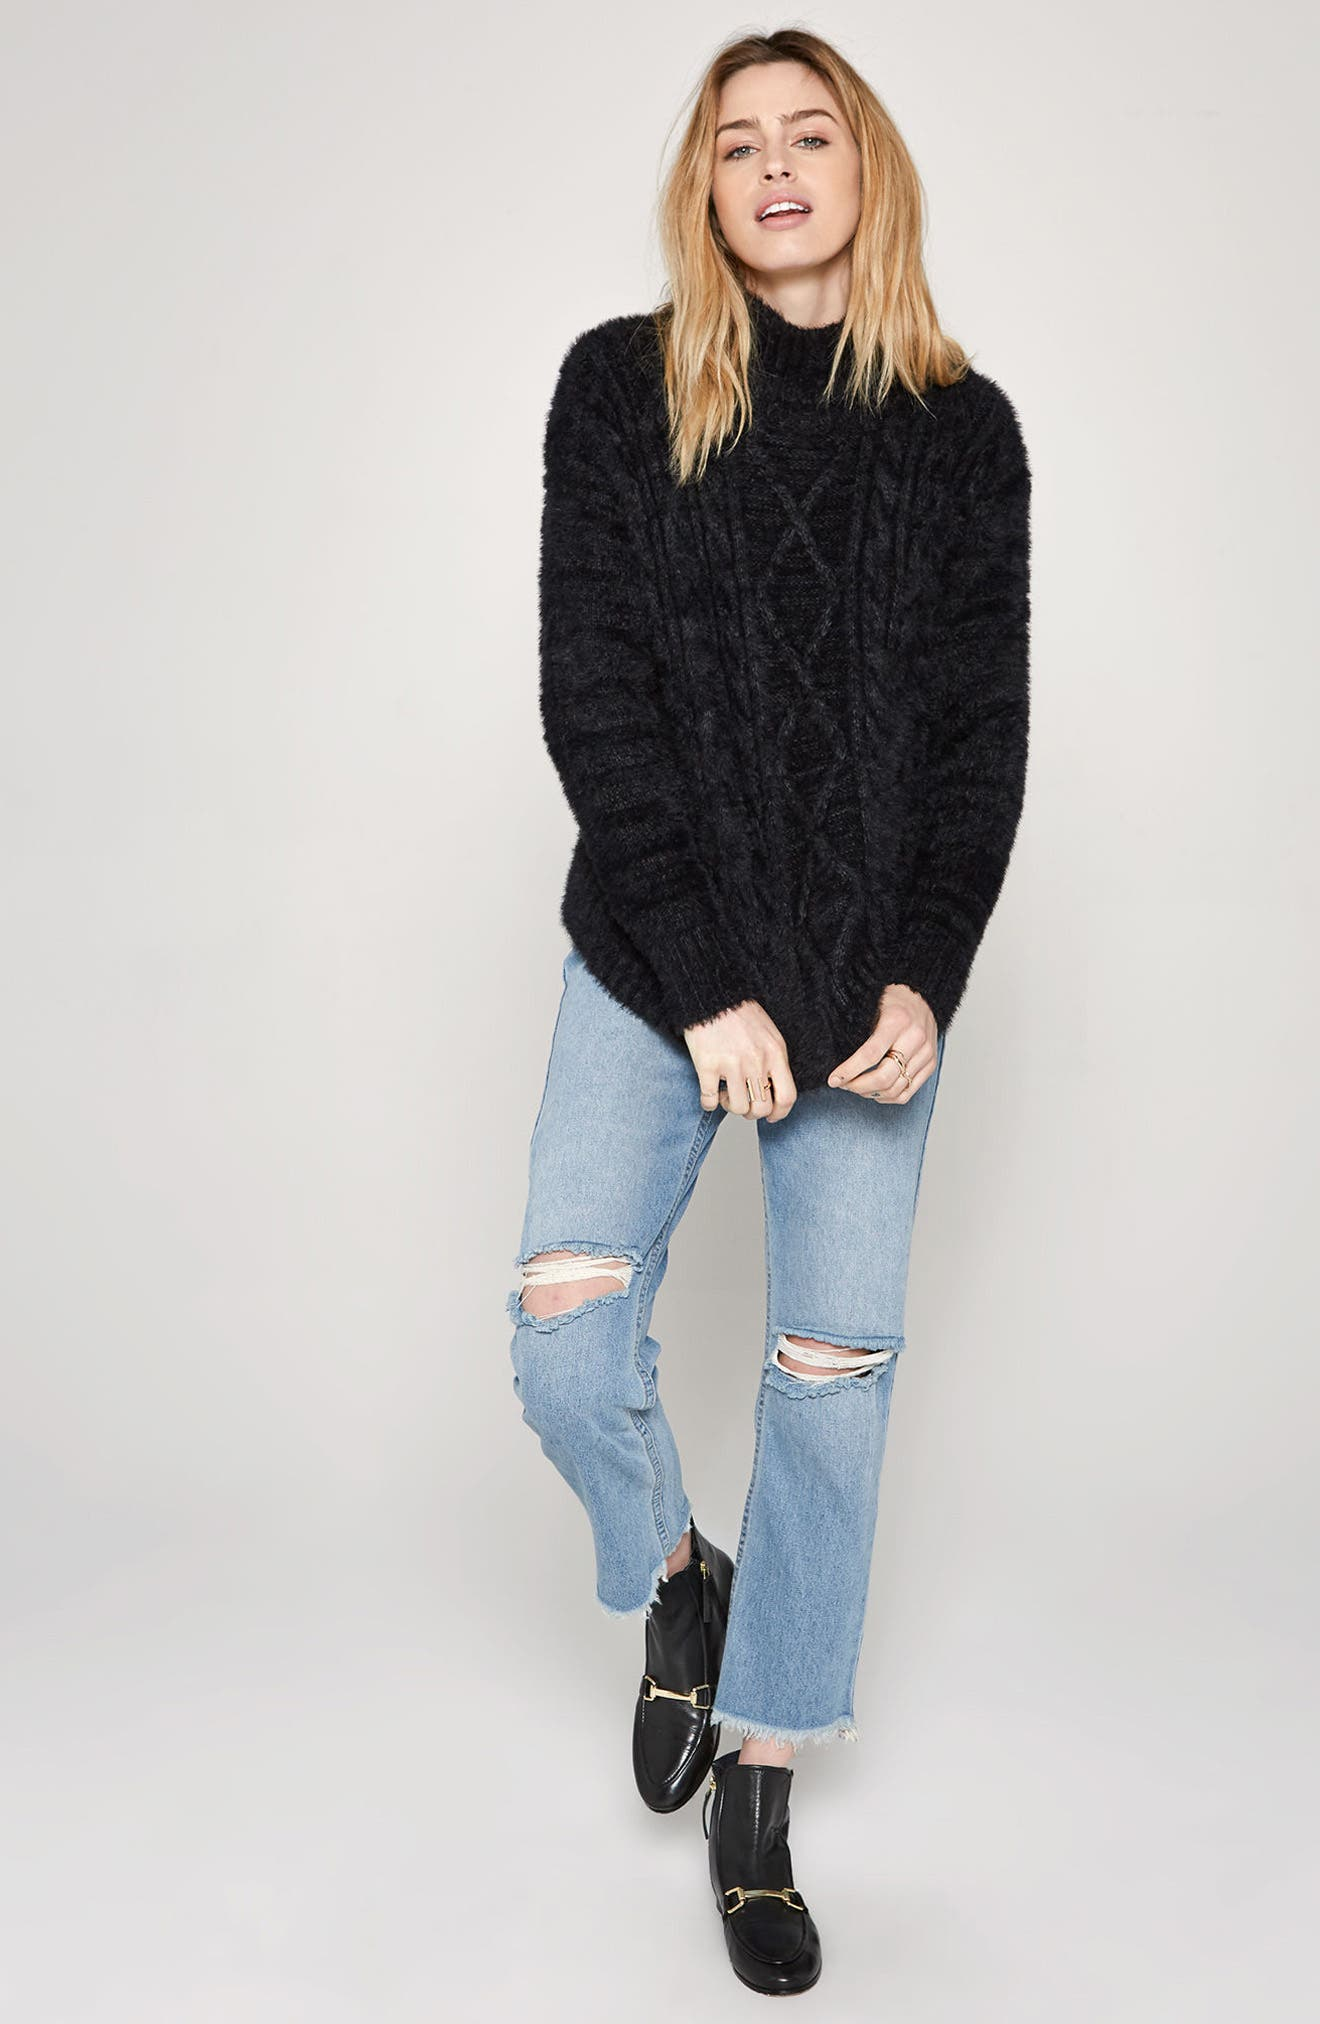 Cool Winds Cable Knit Sweater,                             Alternate thumbnail 2, color,                             Black